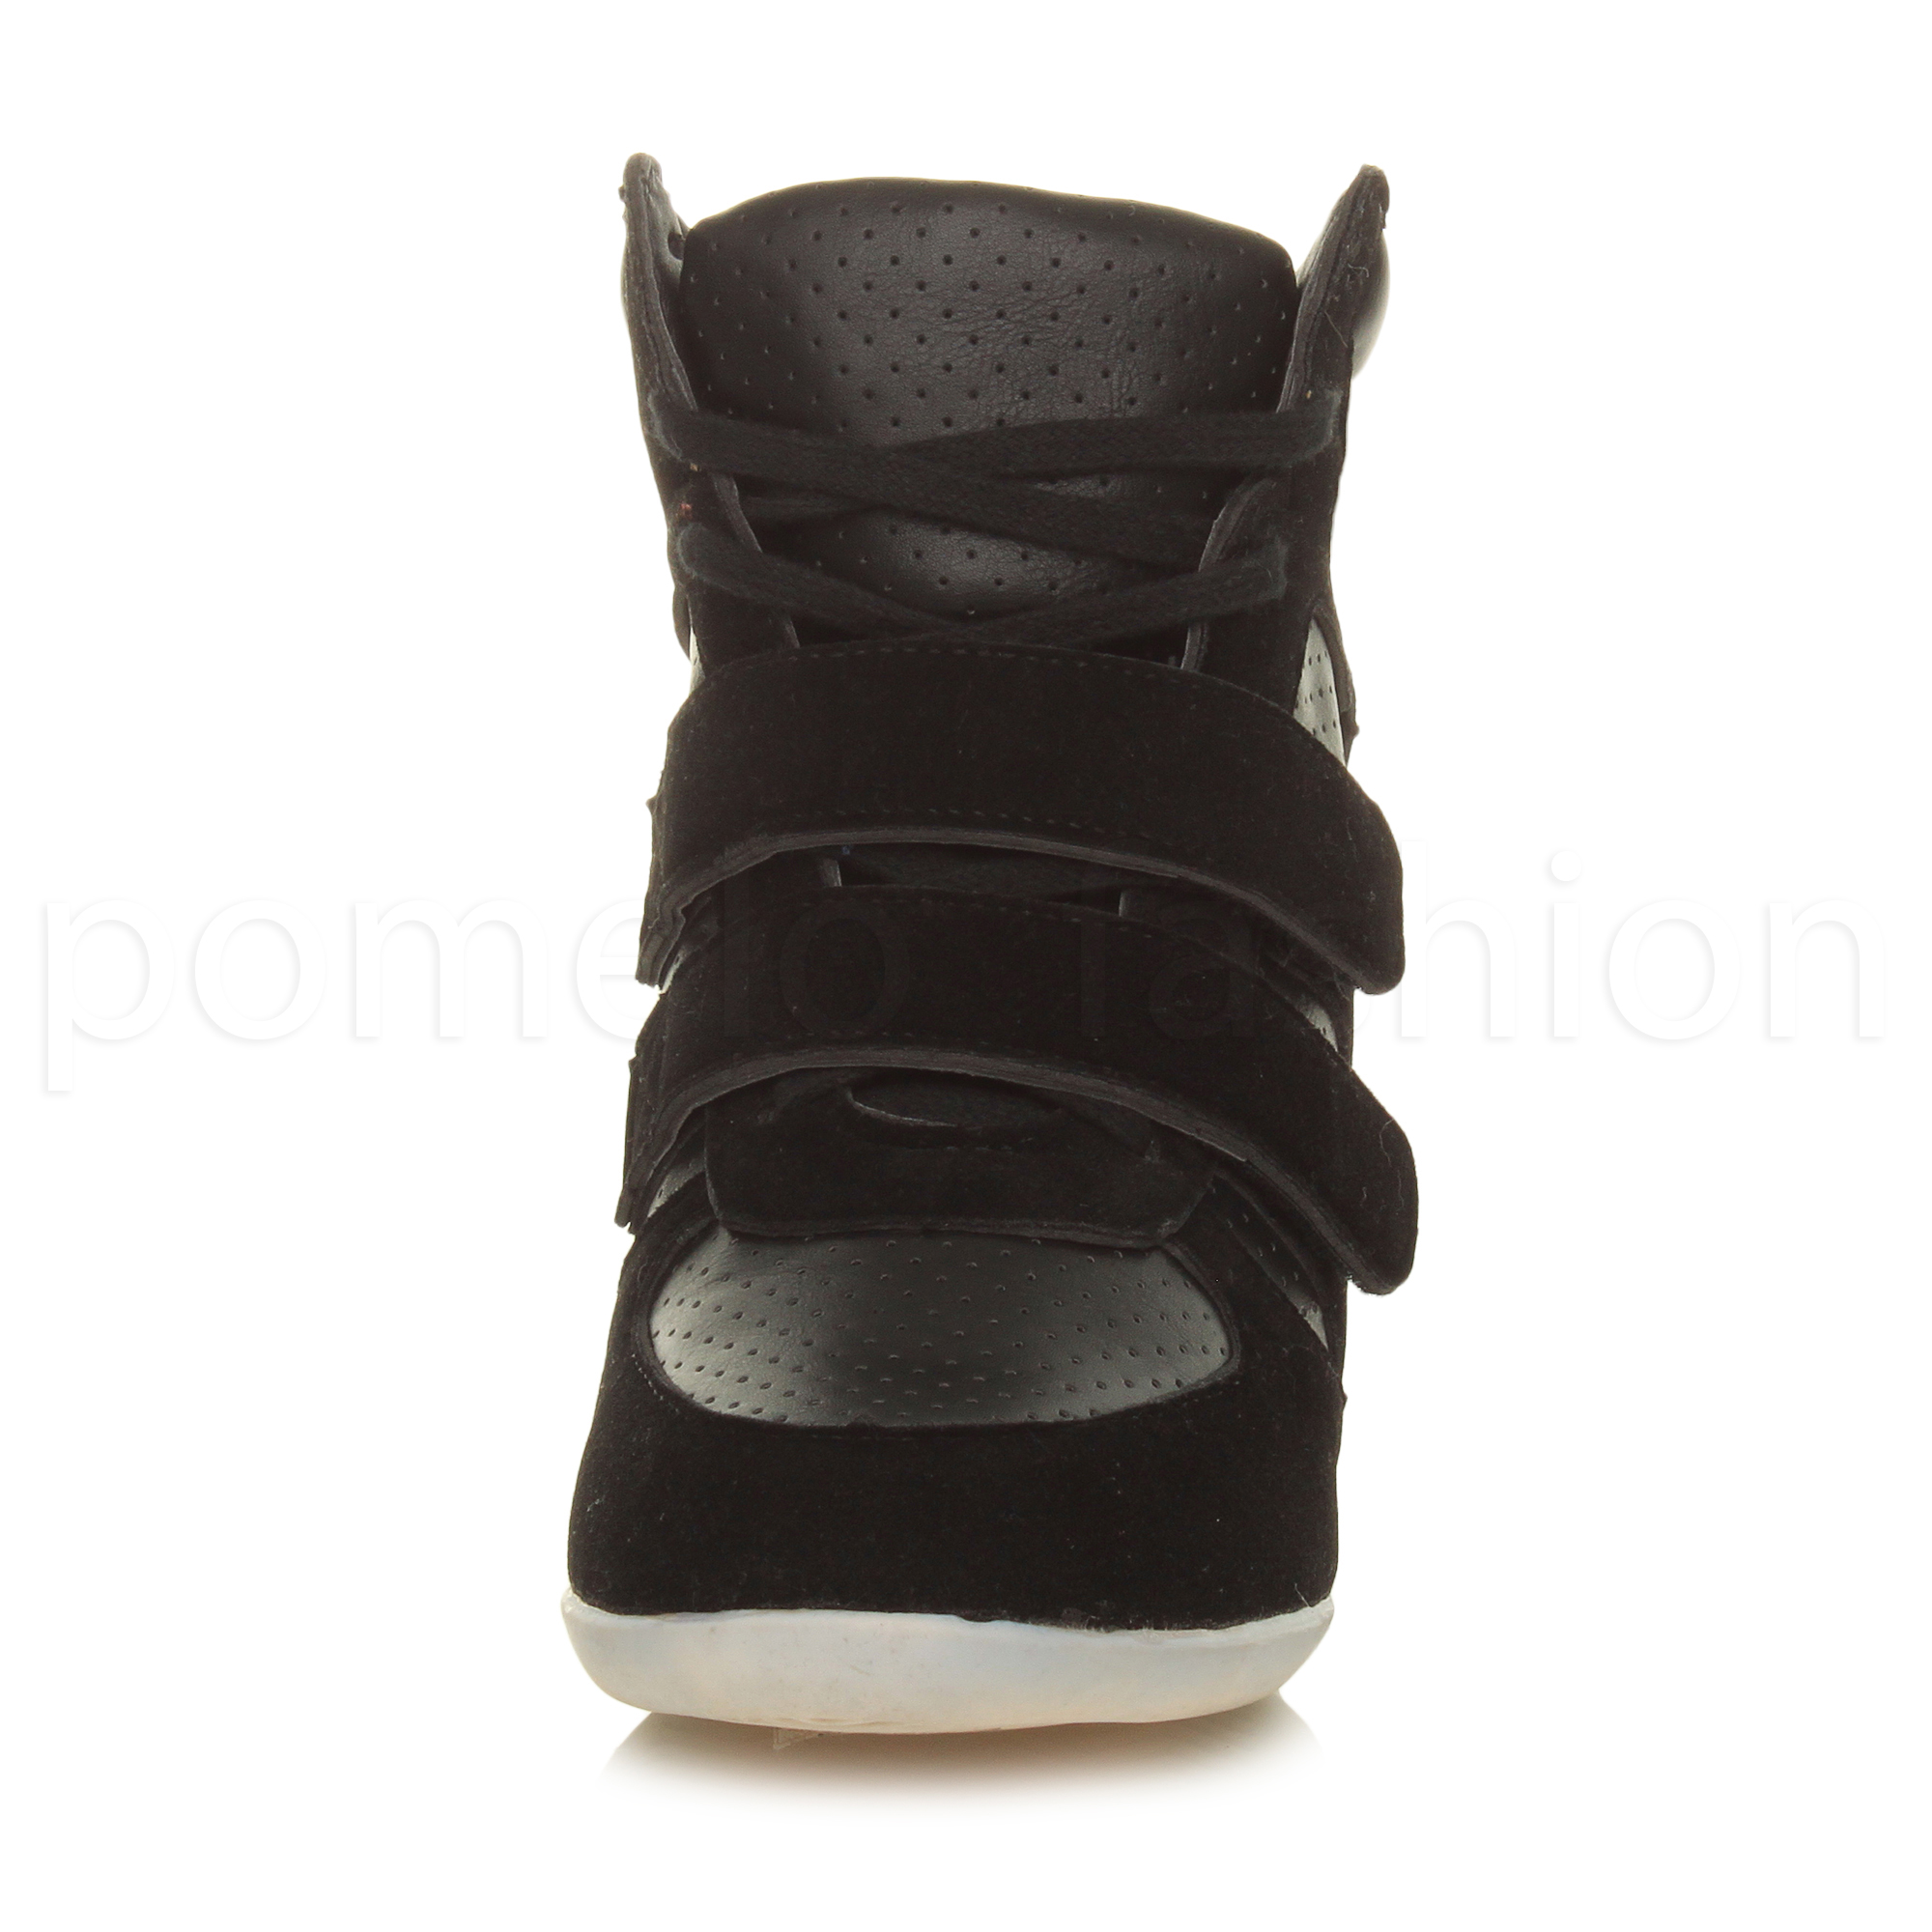 WOMENS-LADIES-HIGH-WEDGE-LACE-UP-HI-HIGH-TOP-TRAINER-ANKLE-SHOE-BOOTS-SIZE